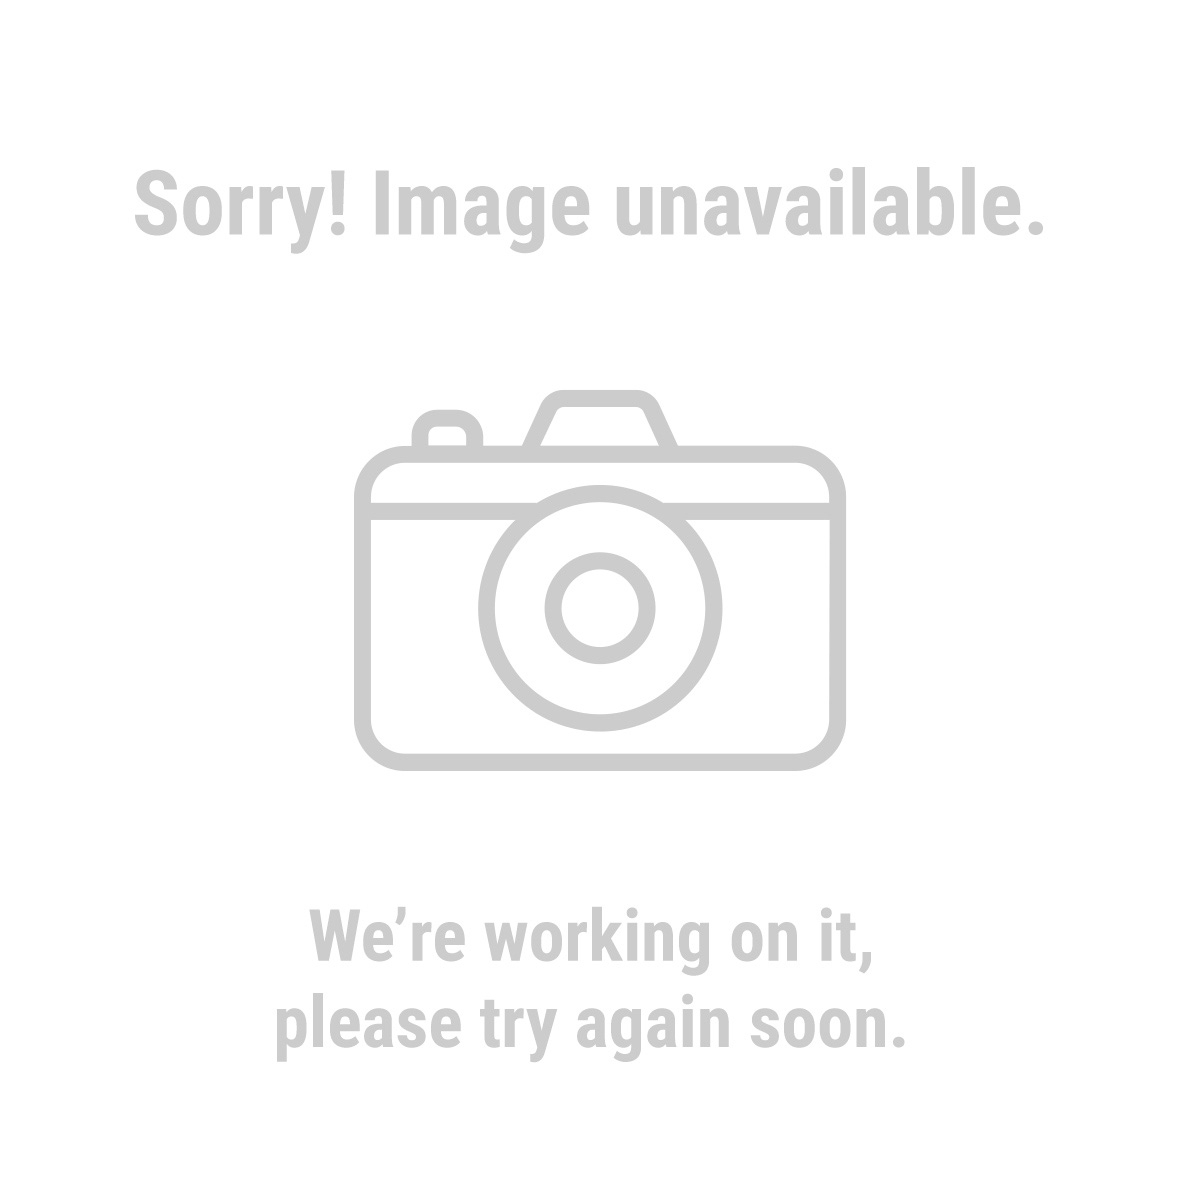 Chicago Electric Power Tools 67537 Multifunction Power Tool, Variable Speed Oscillating